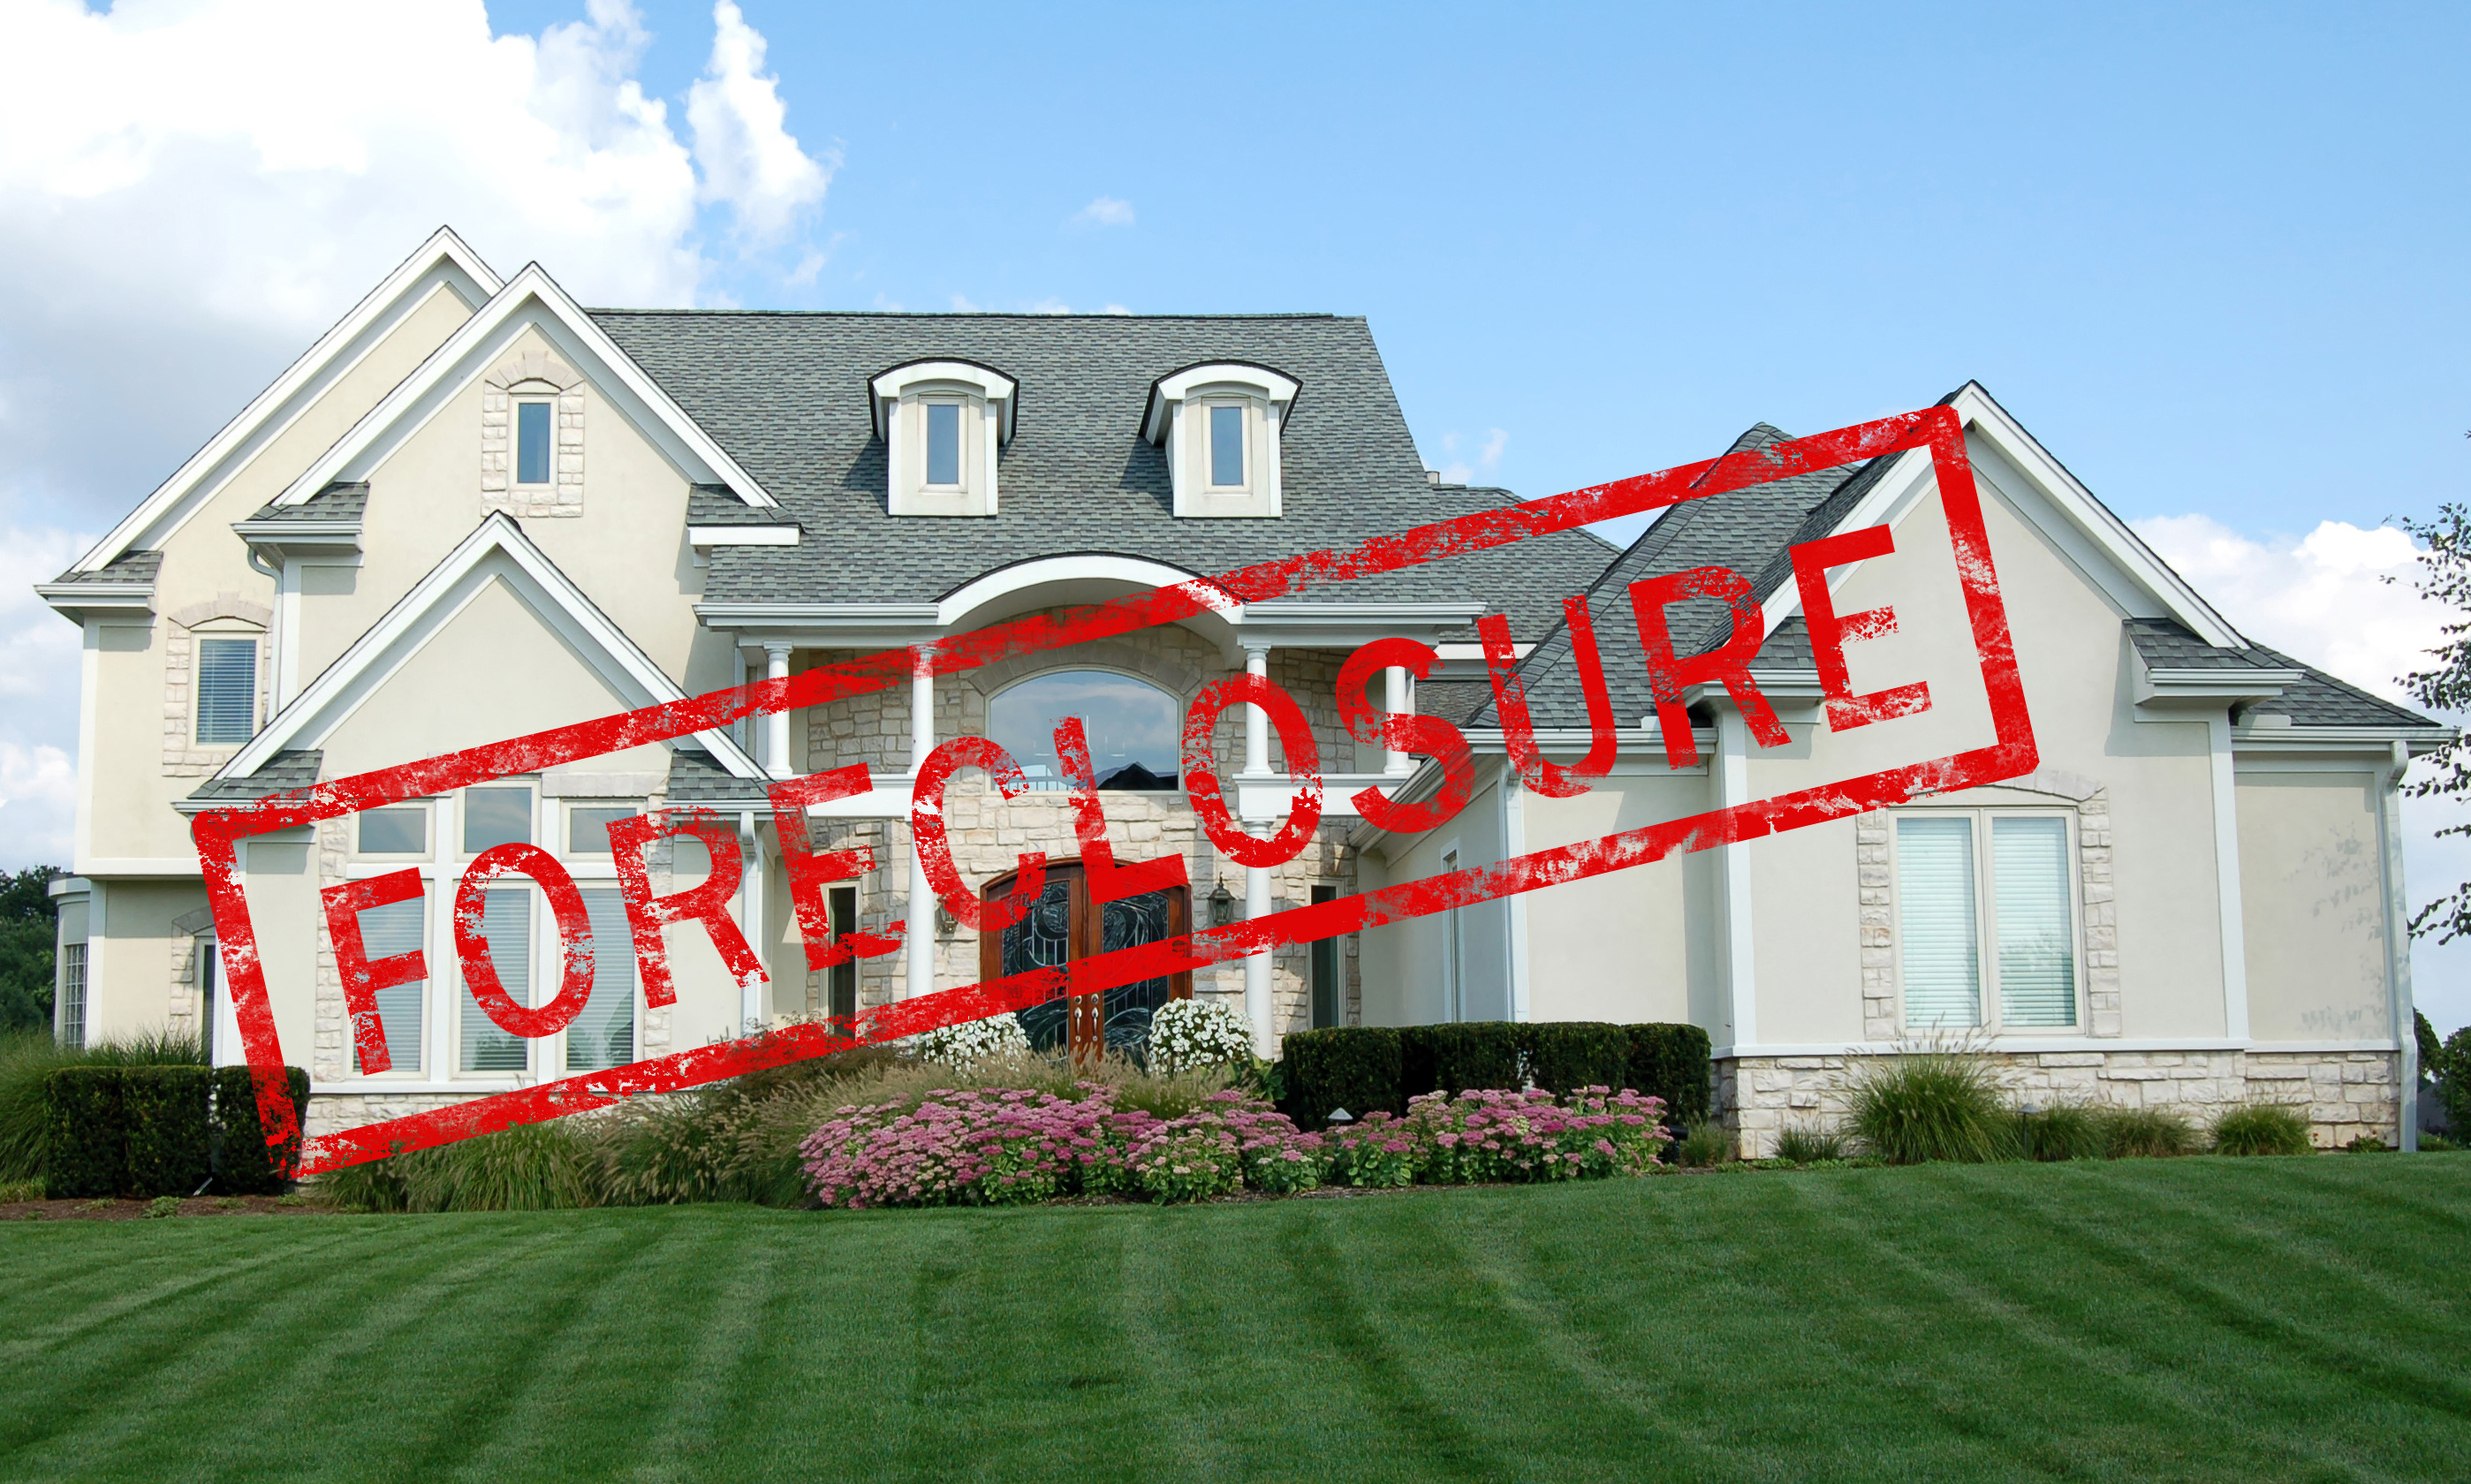 Call Crest Appraisal Services when you need appraisals pertaining to King foreclosures